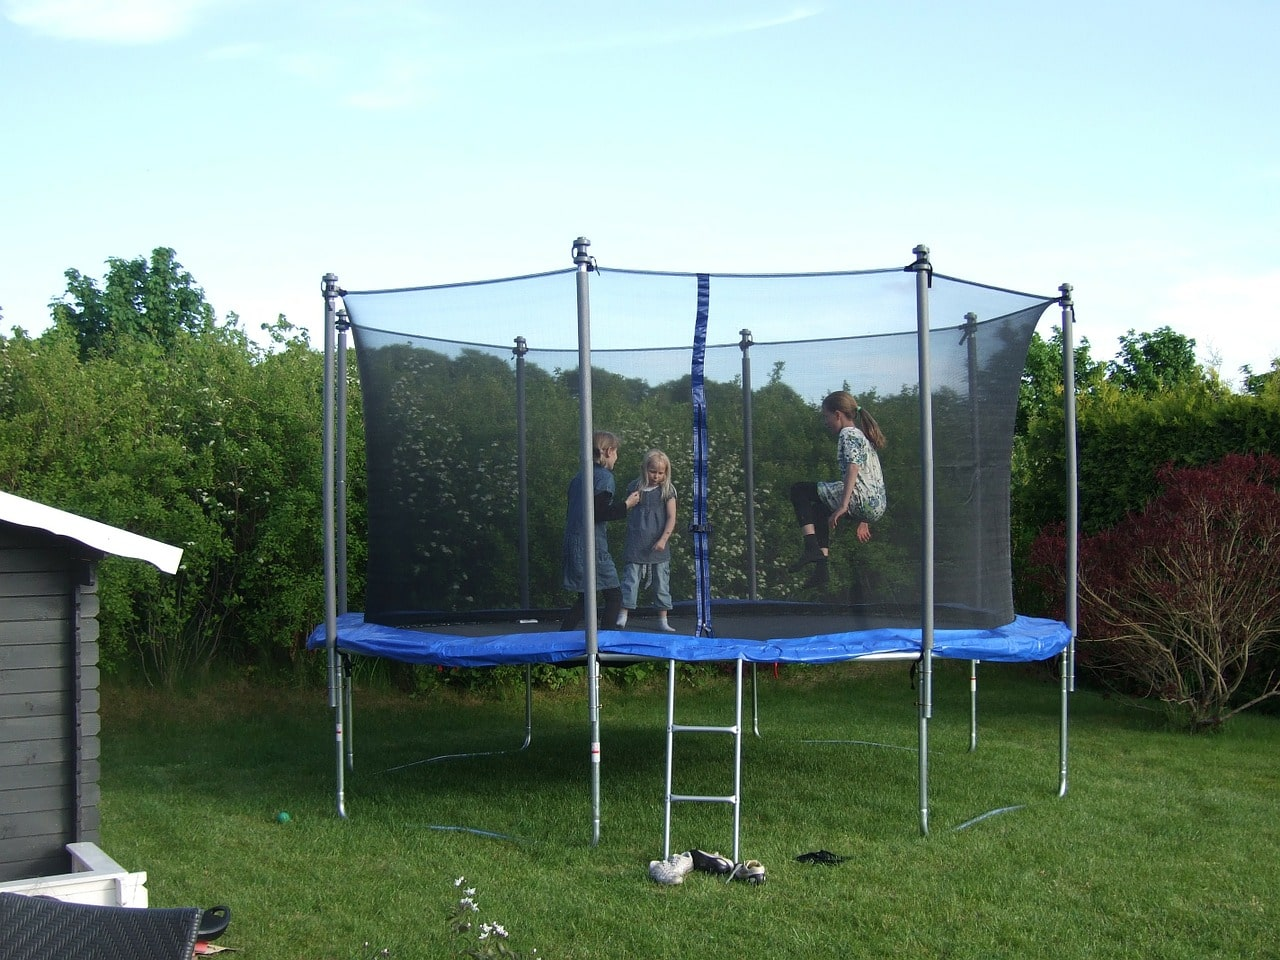 Children playing on the trampoline in backyard